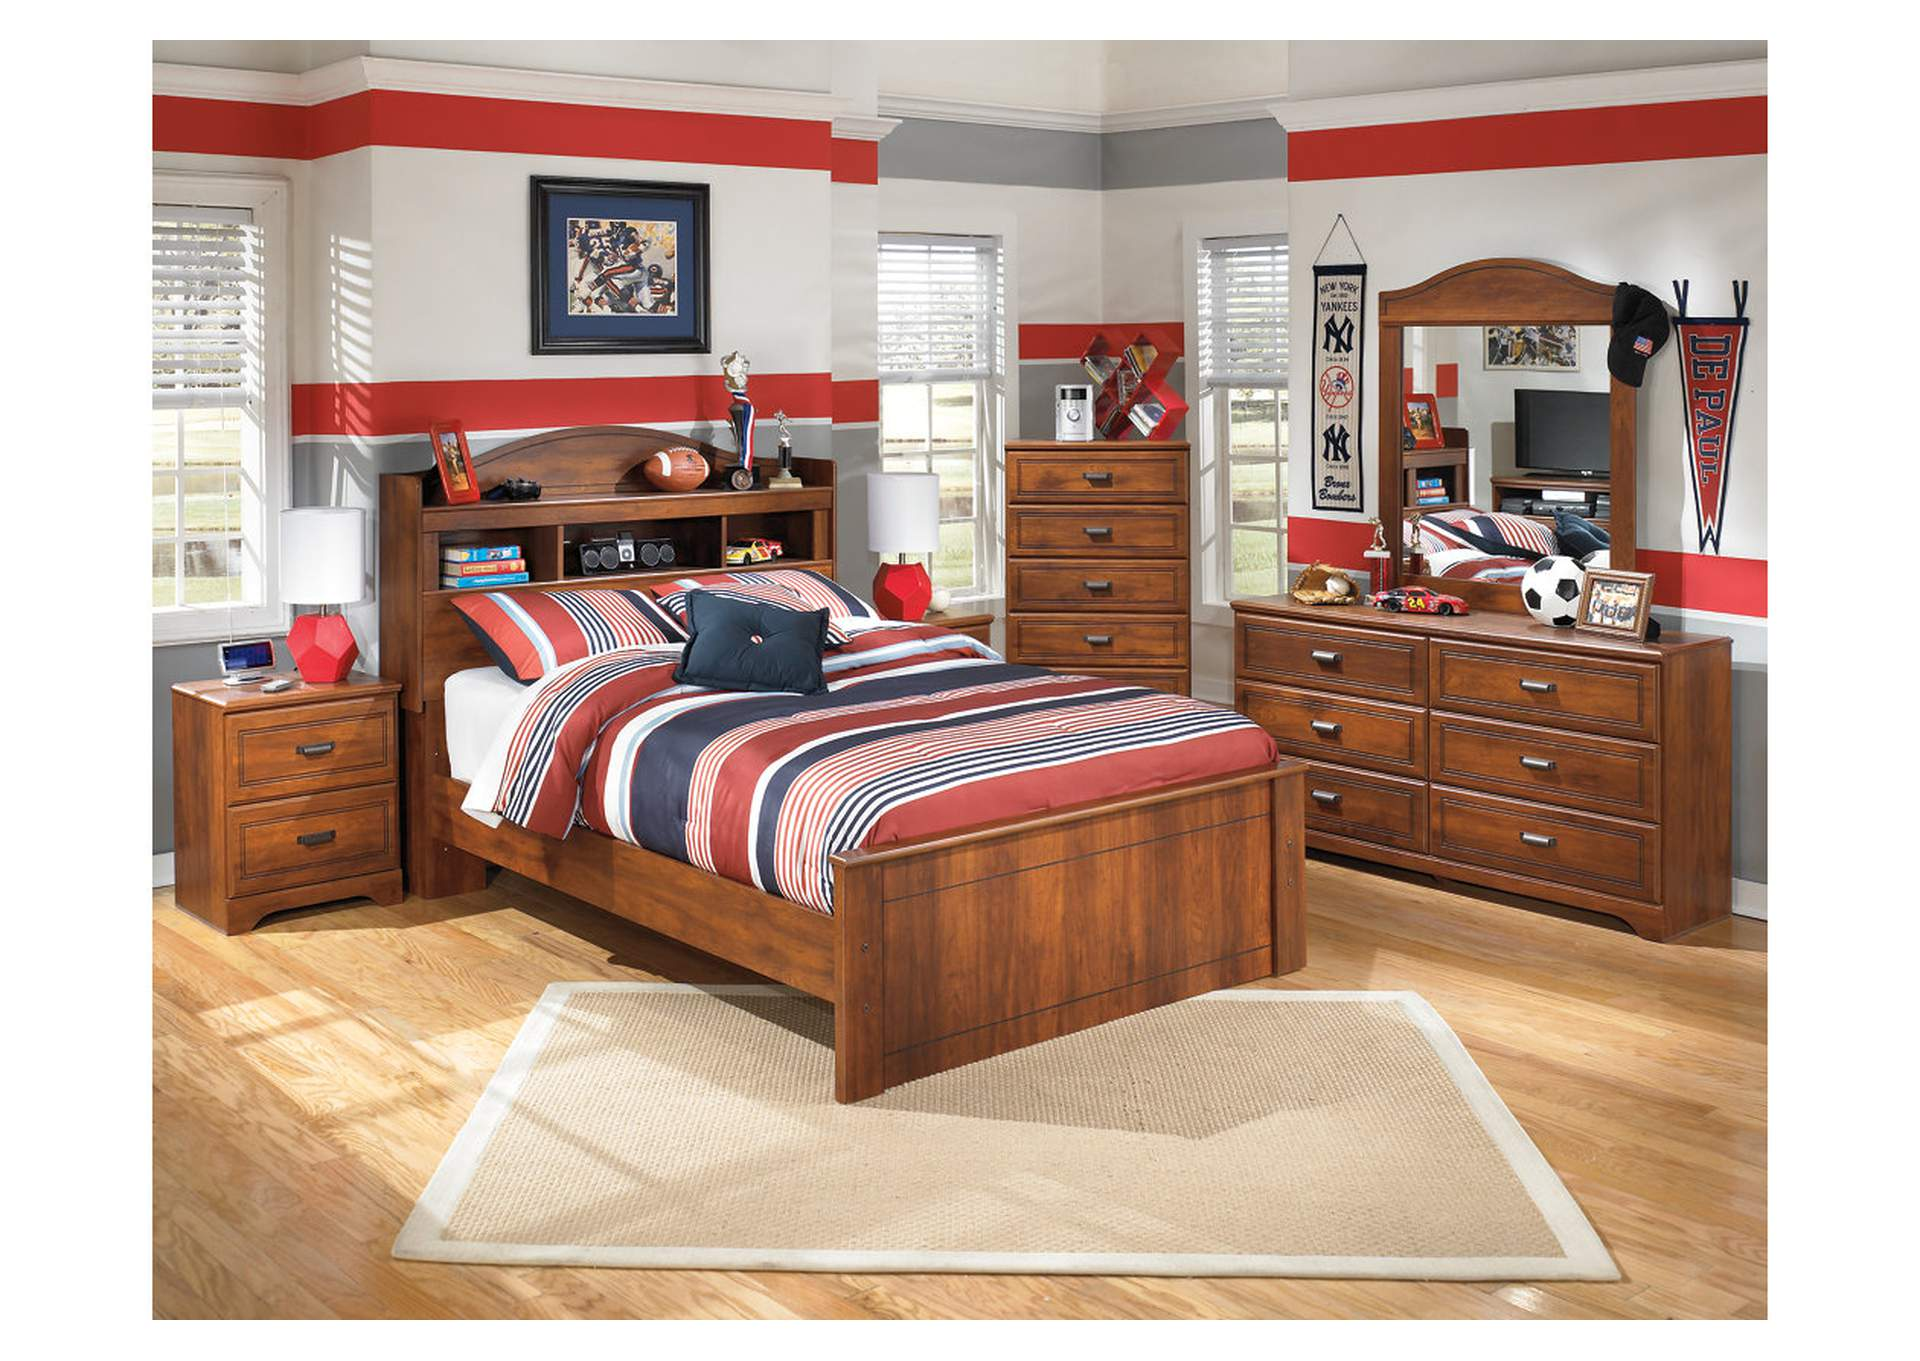 Barchan Full Bookcase Bed w/Dresser, Mirror, Drawer Chest & Nightstand,Signature Design By Ashley